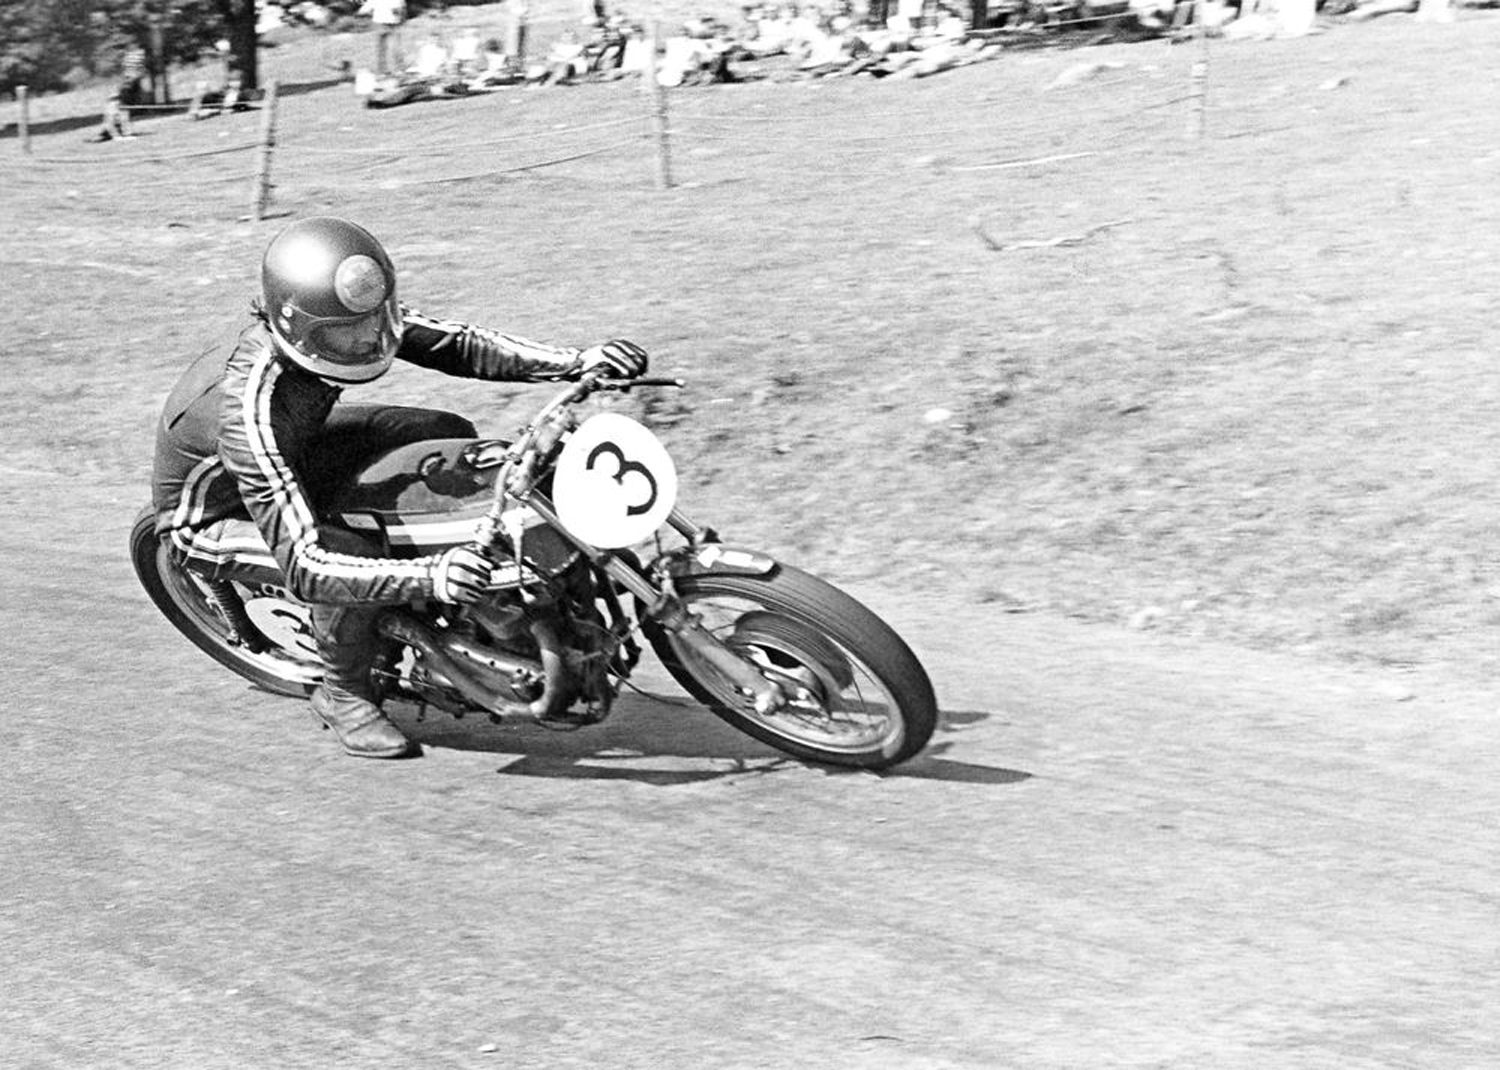 Paul Spargo was one of the wild-riding hillclimb racers Nicksy tried to emulate on his Velocette